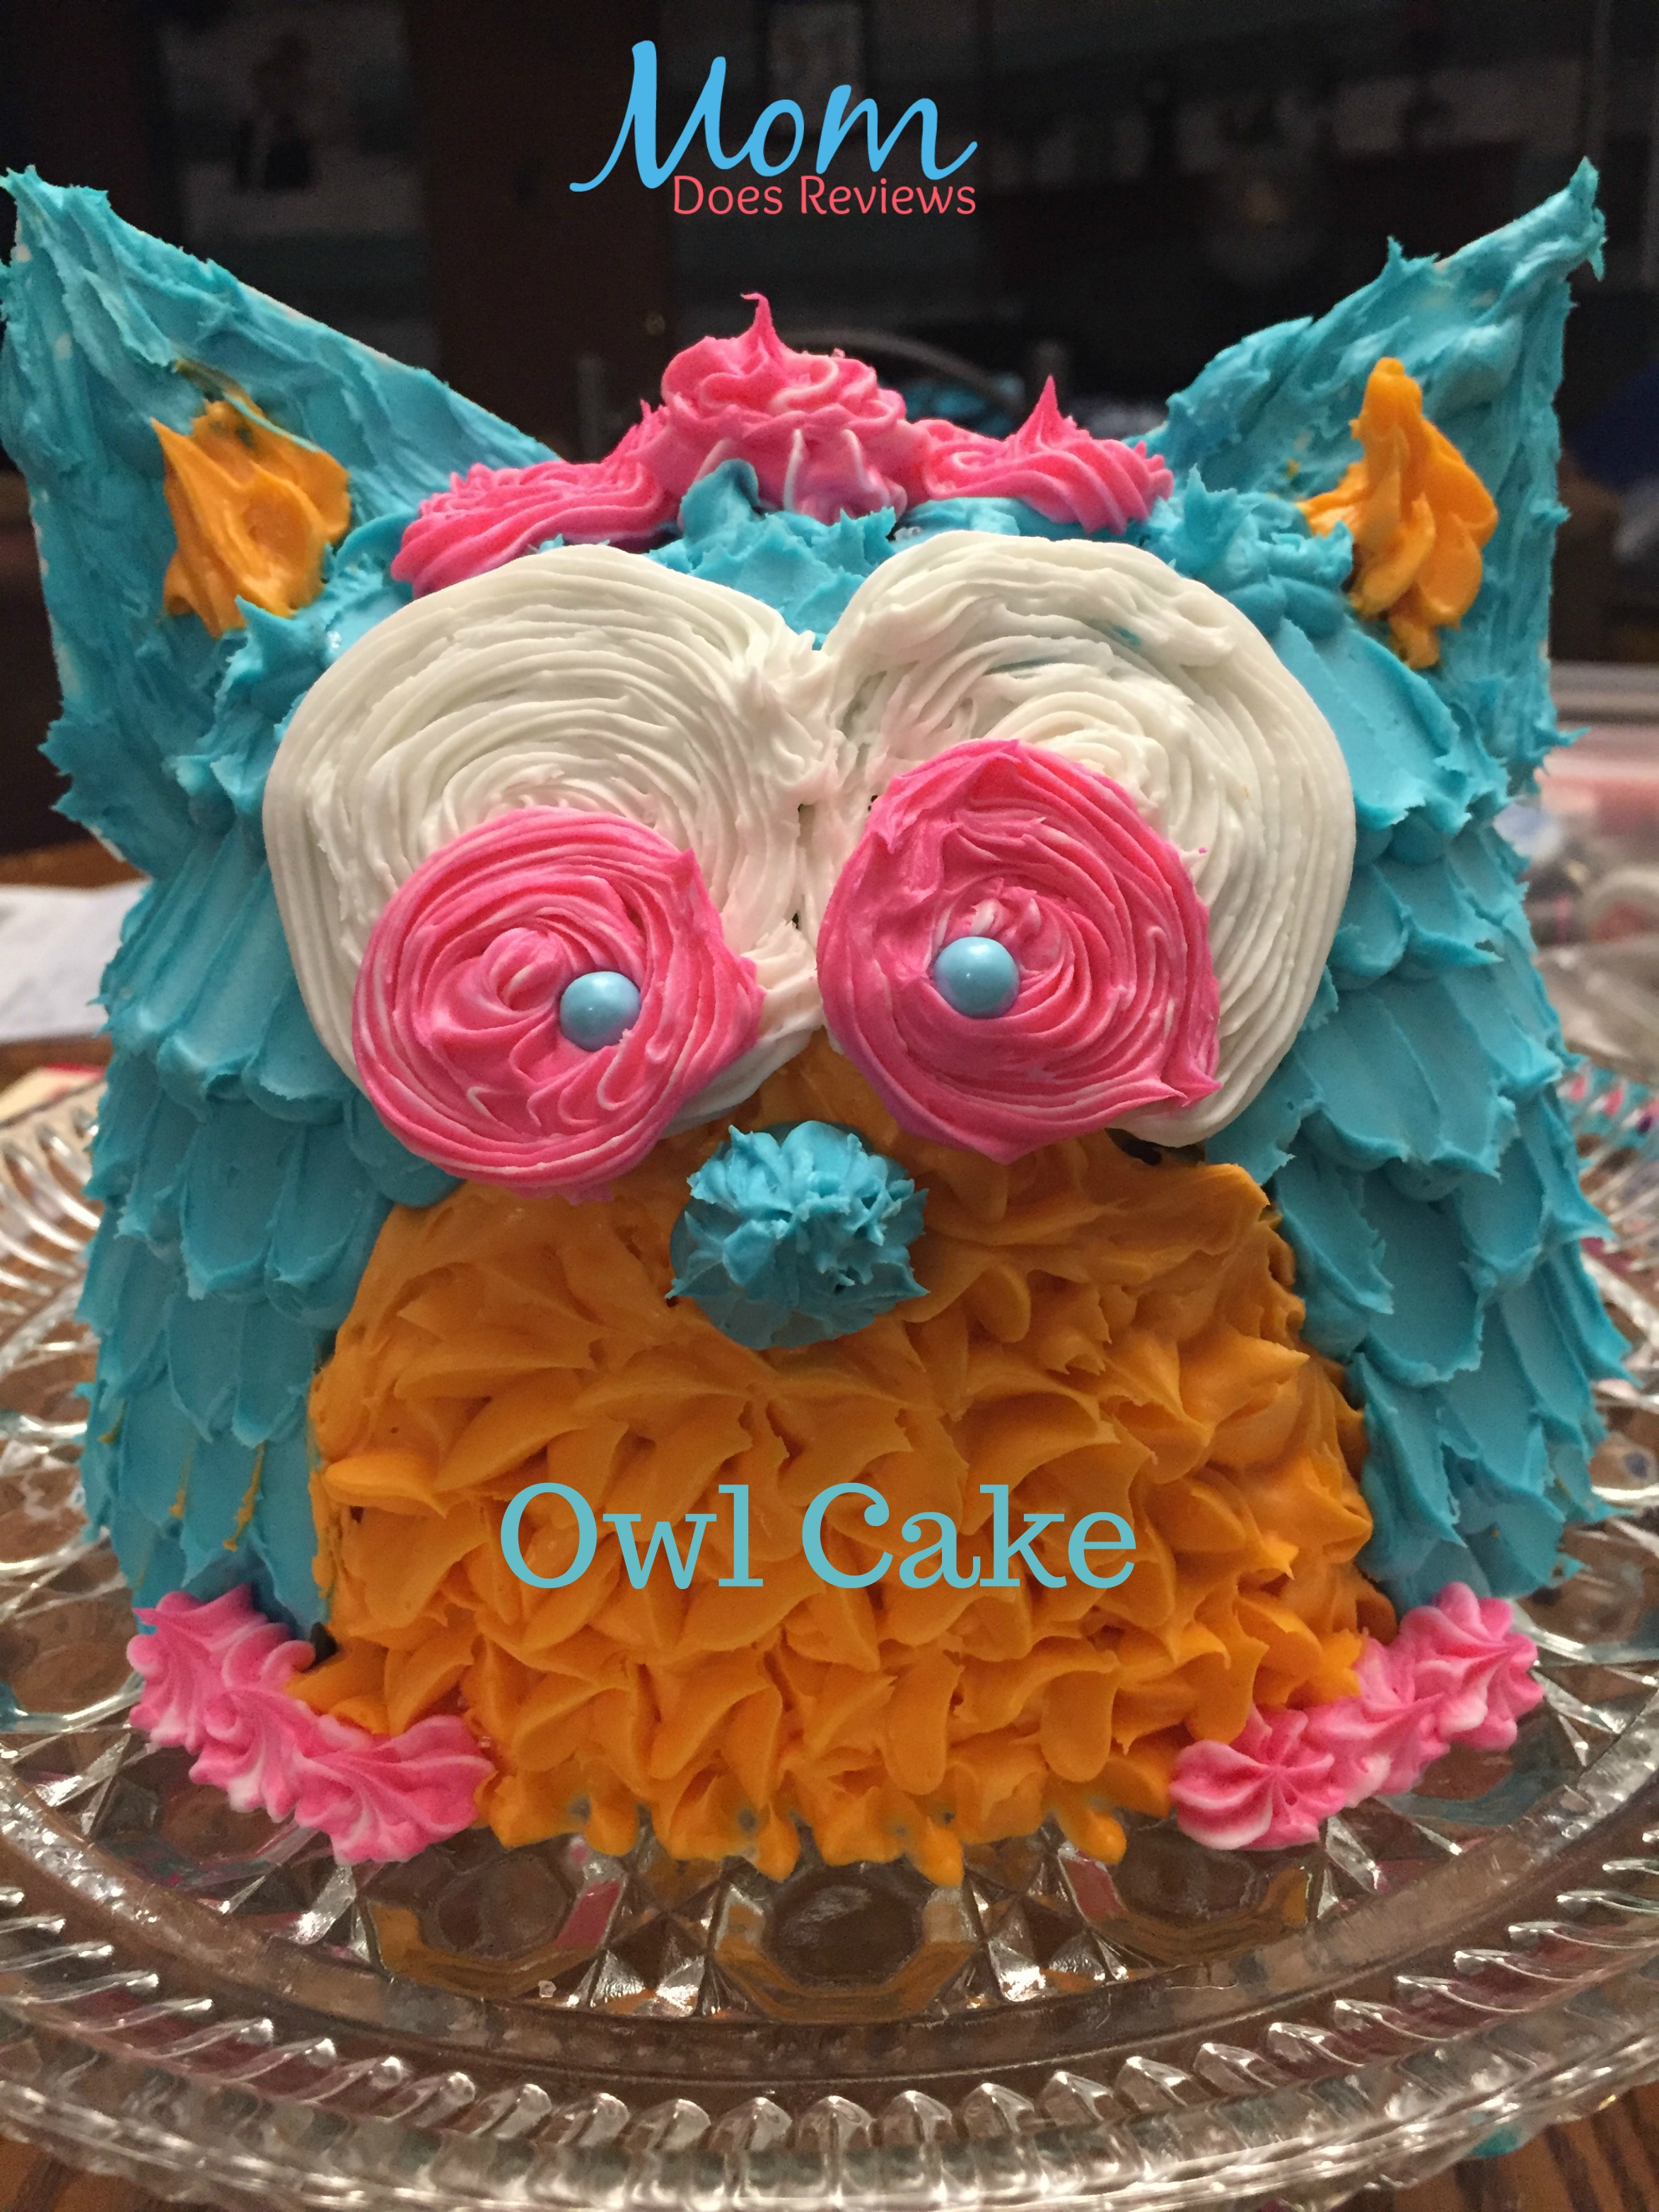 Owl cake for an Owl-themed Birthday party